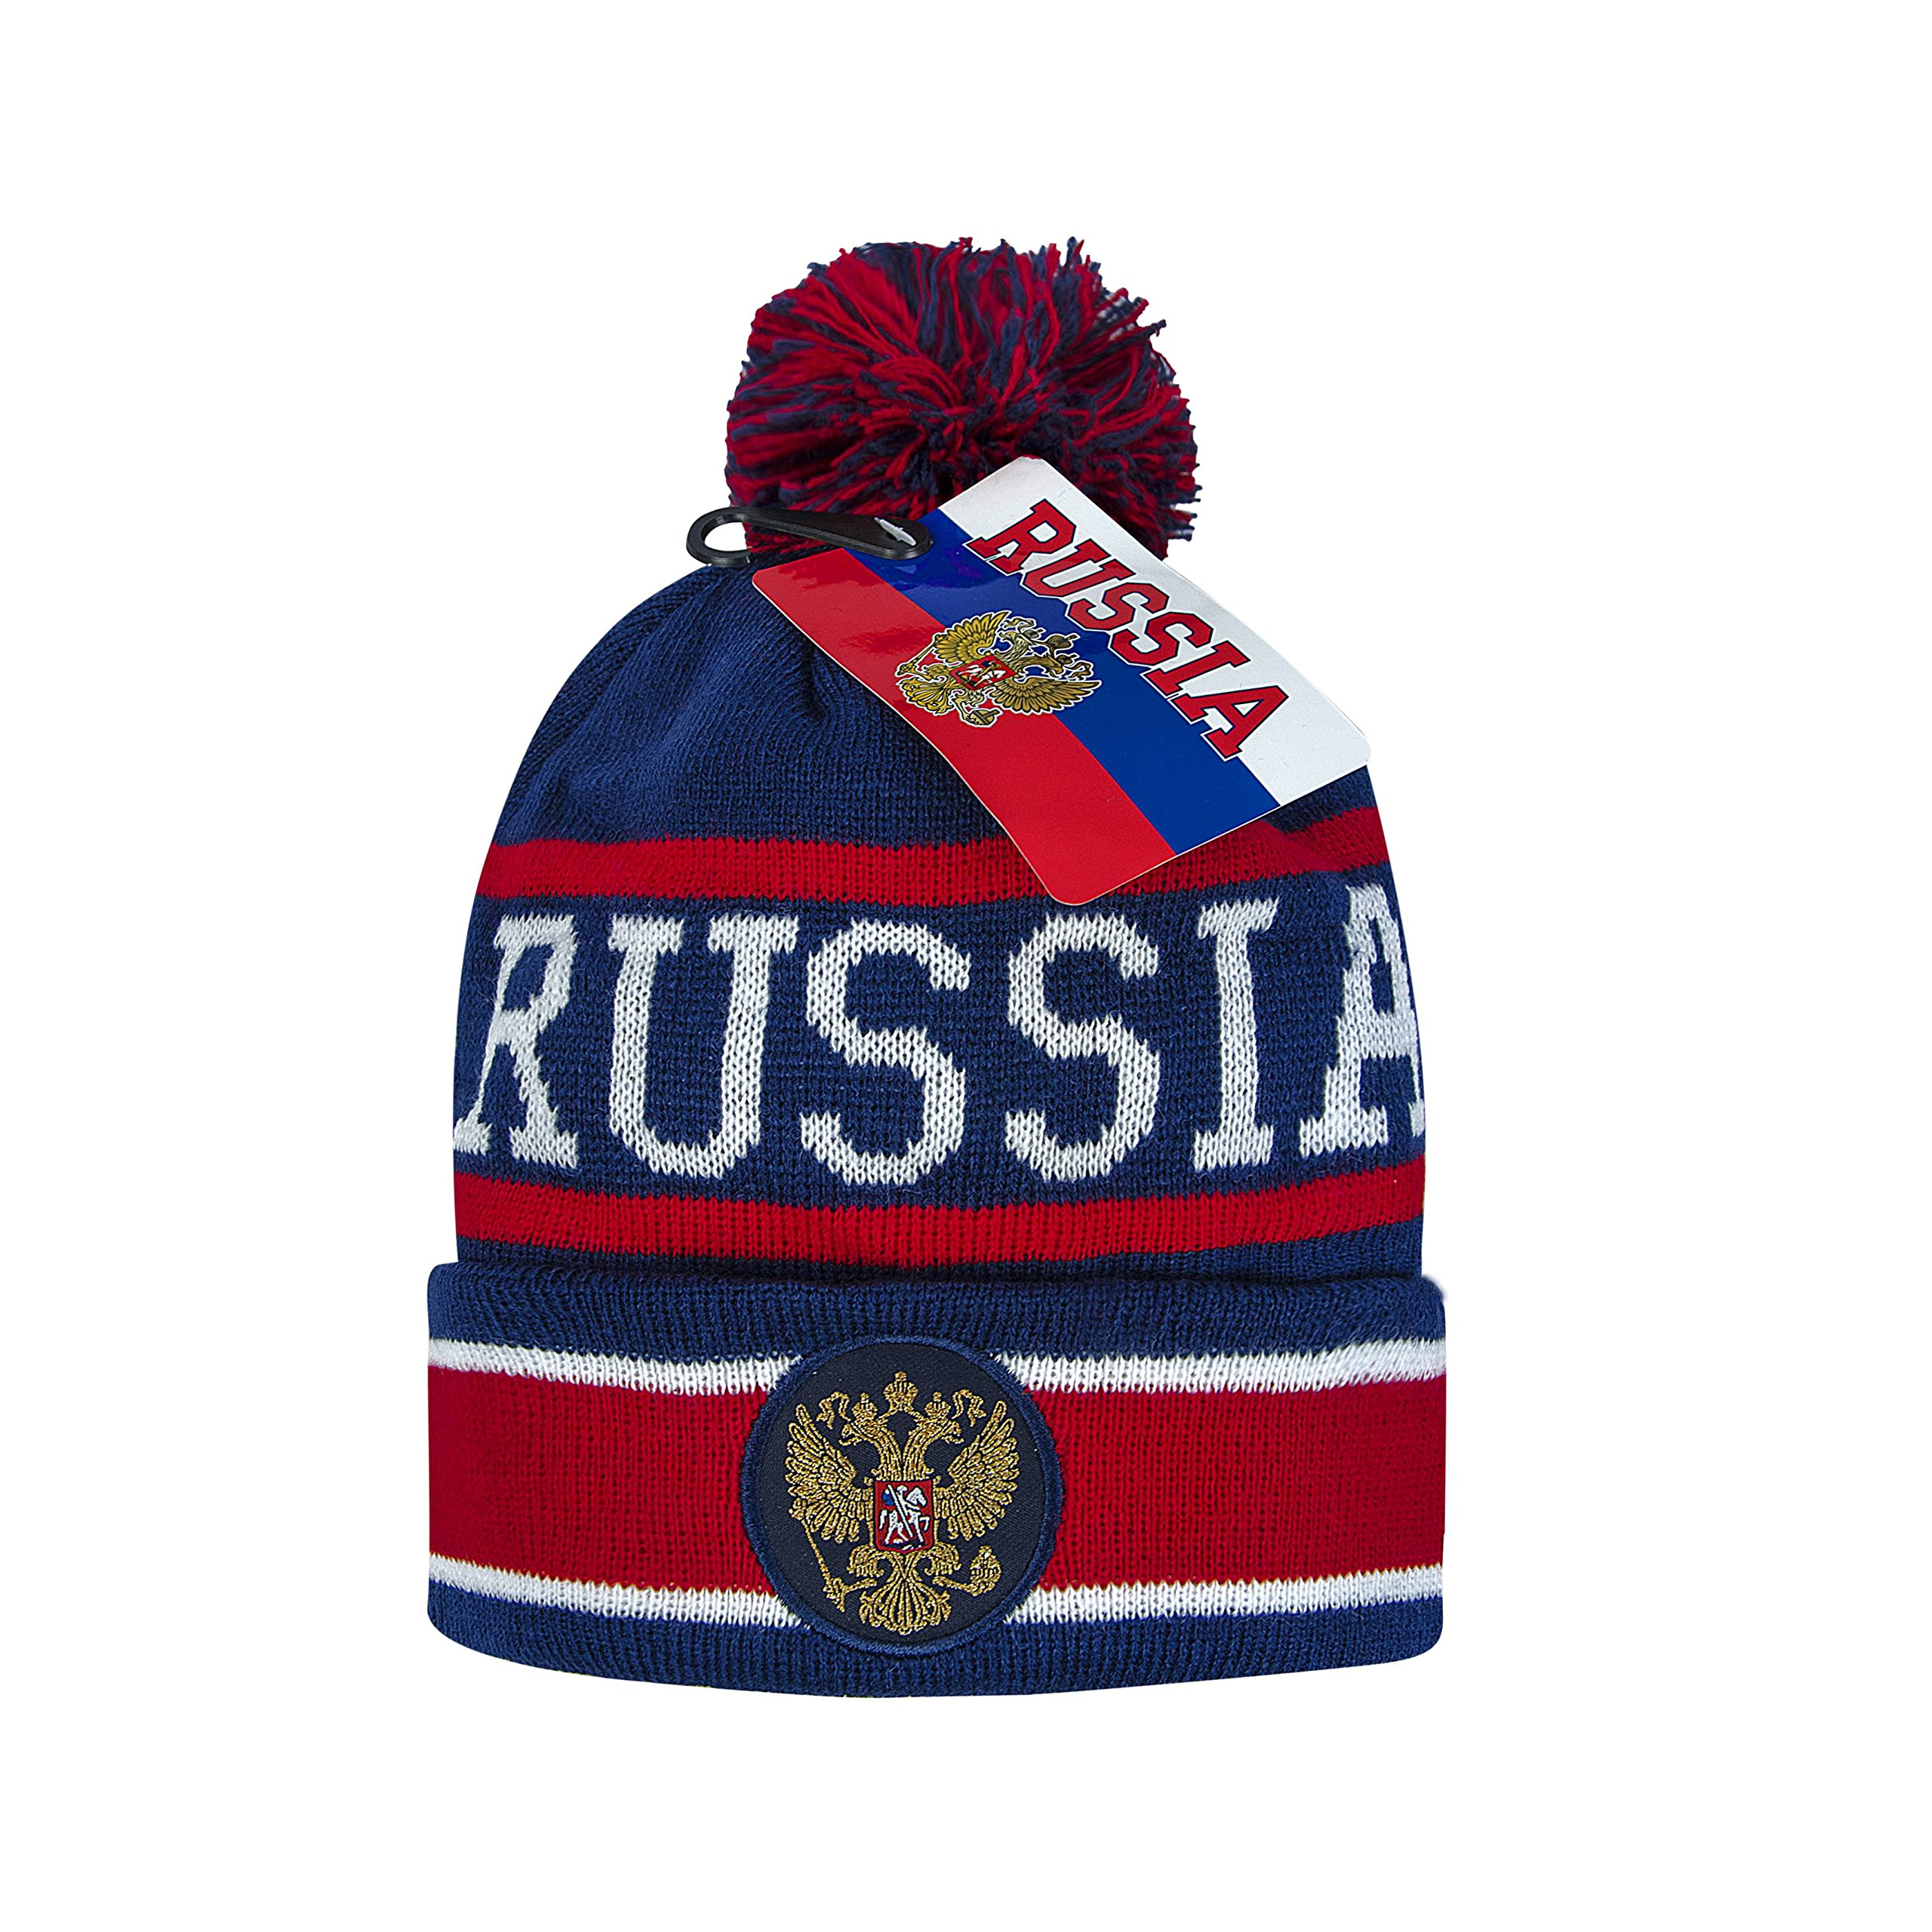 Russia cuffed knit beanie hat with pom, Russian coat of arms, embroidery patch, navy/red L/XL